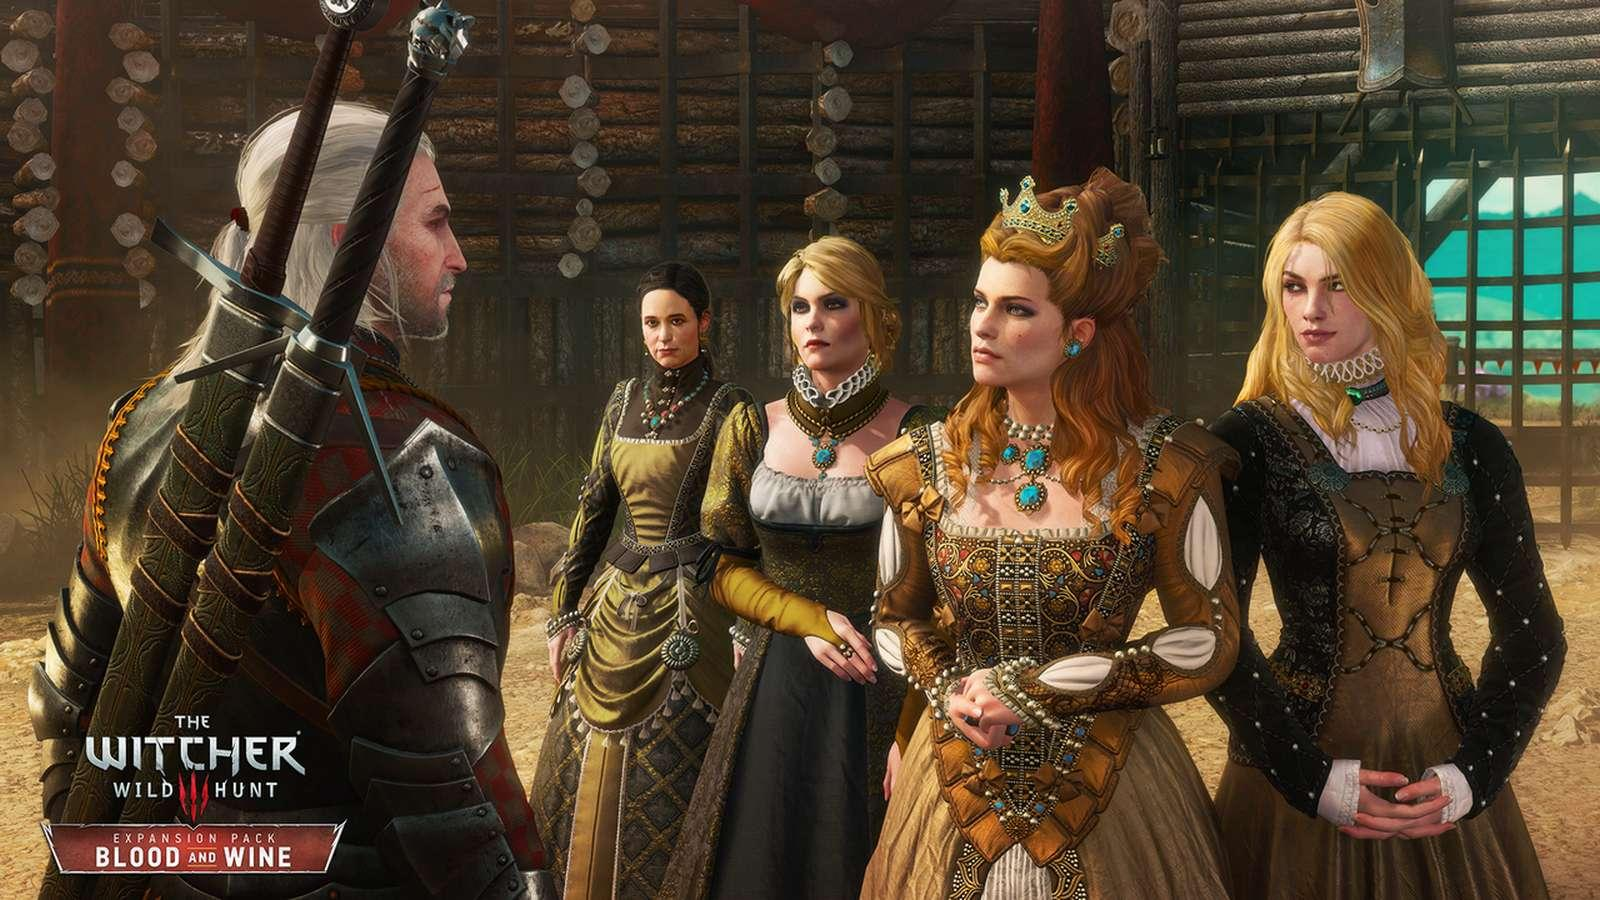 the-witcher-3-blood-and-wine-lo-dien-nhieu-hinh-anh-moi-ft